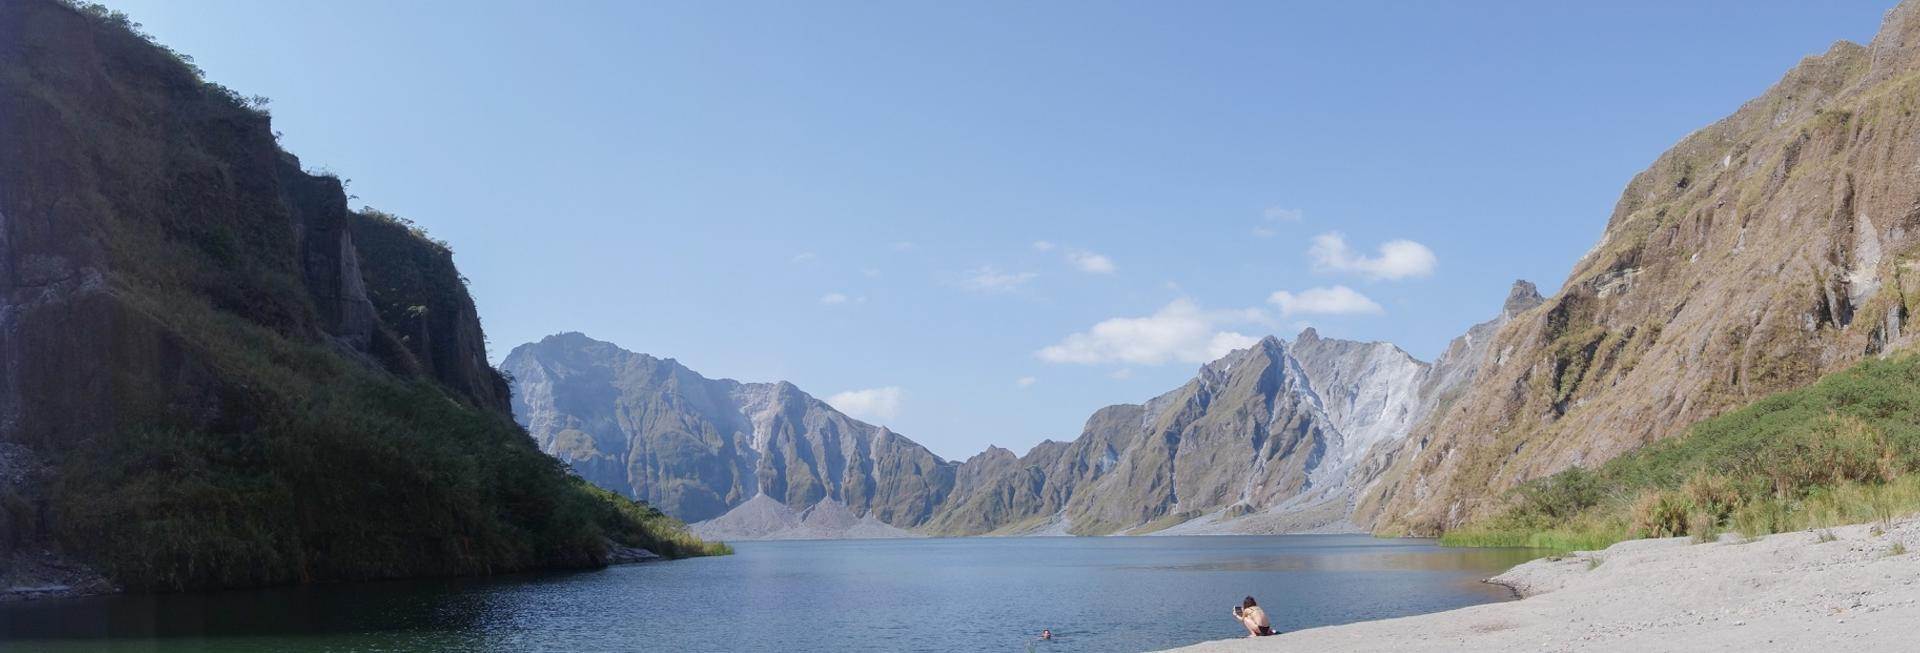 Crater of Mt. Pinatubo, Luzon, the Philippines